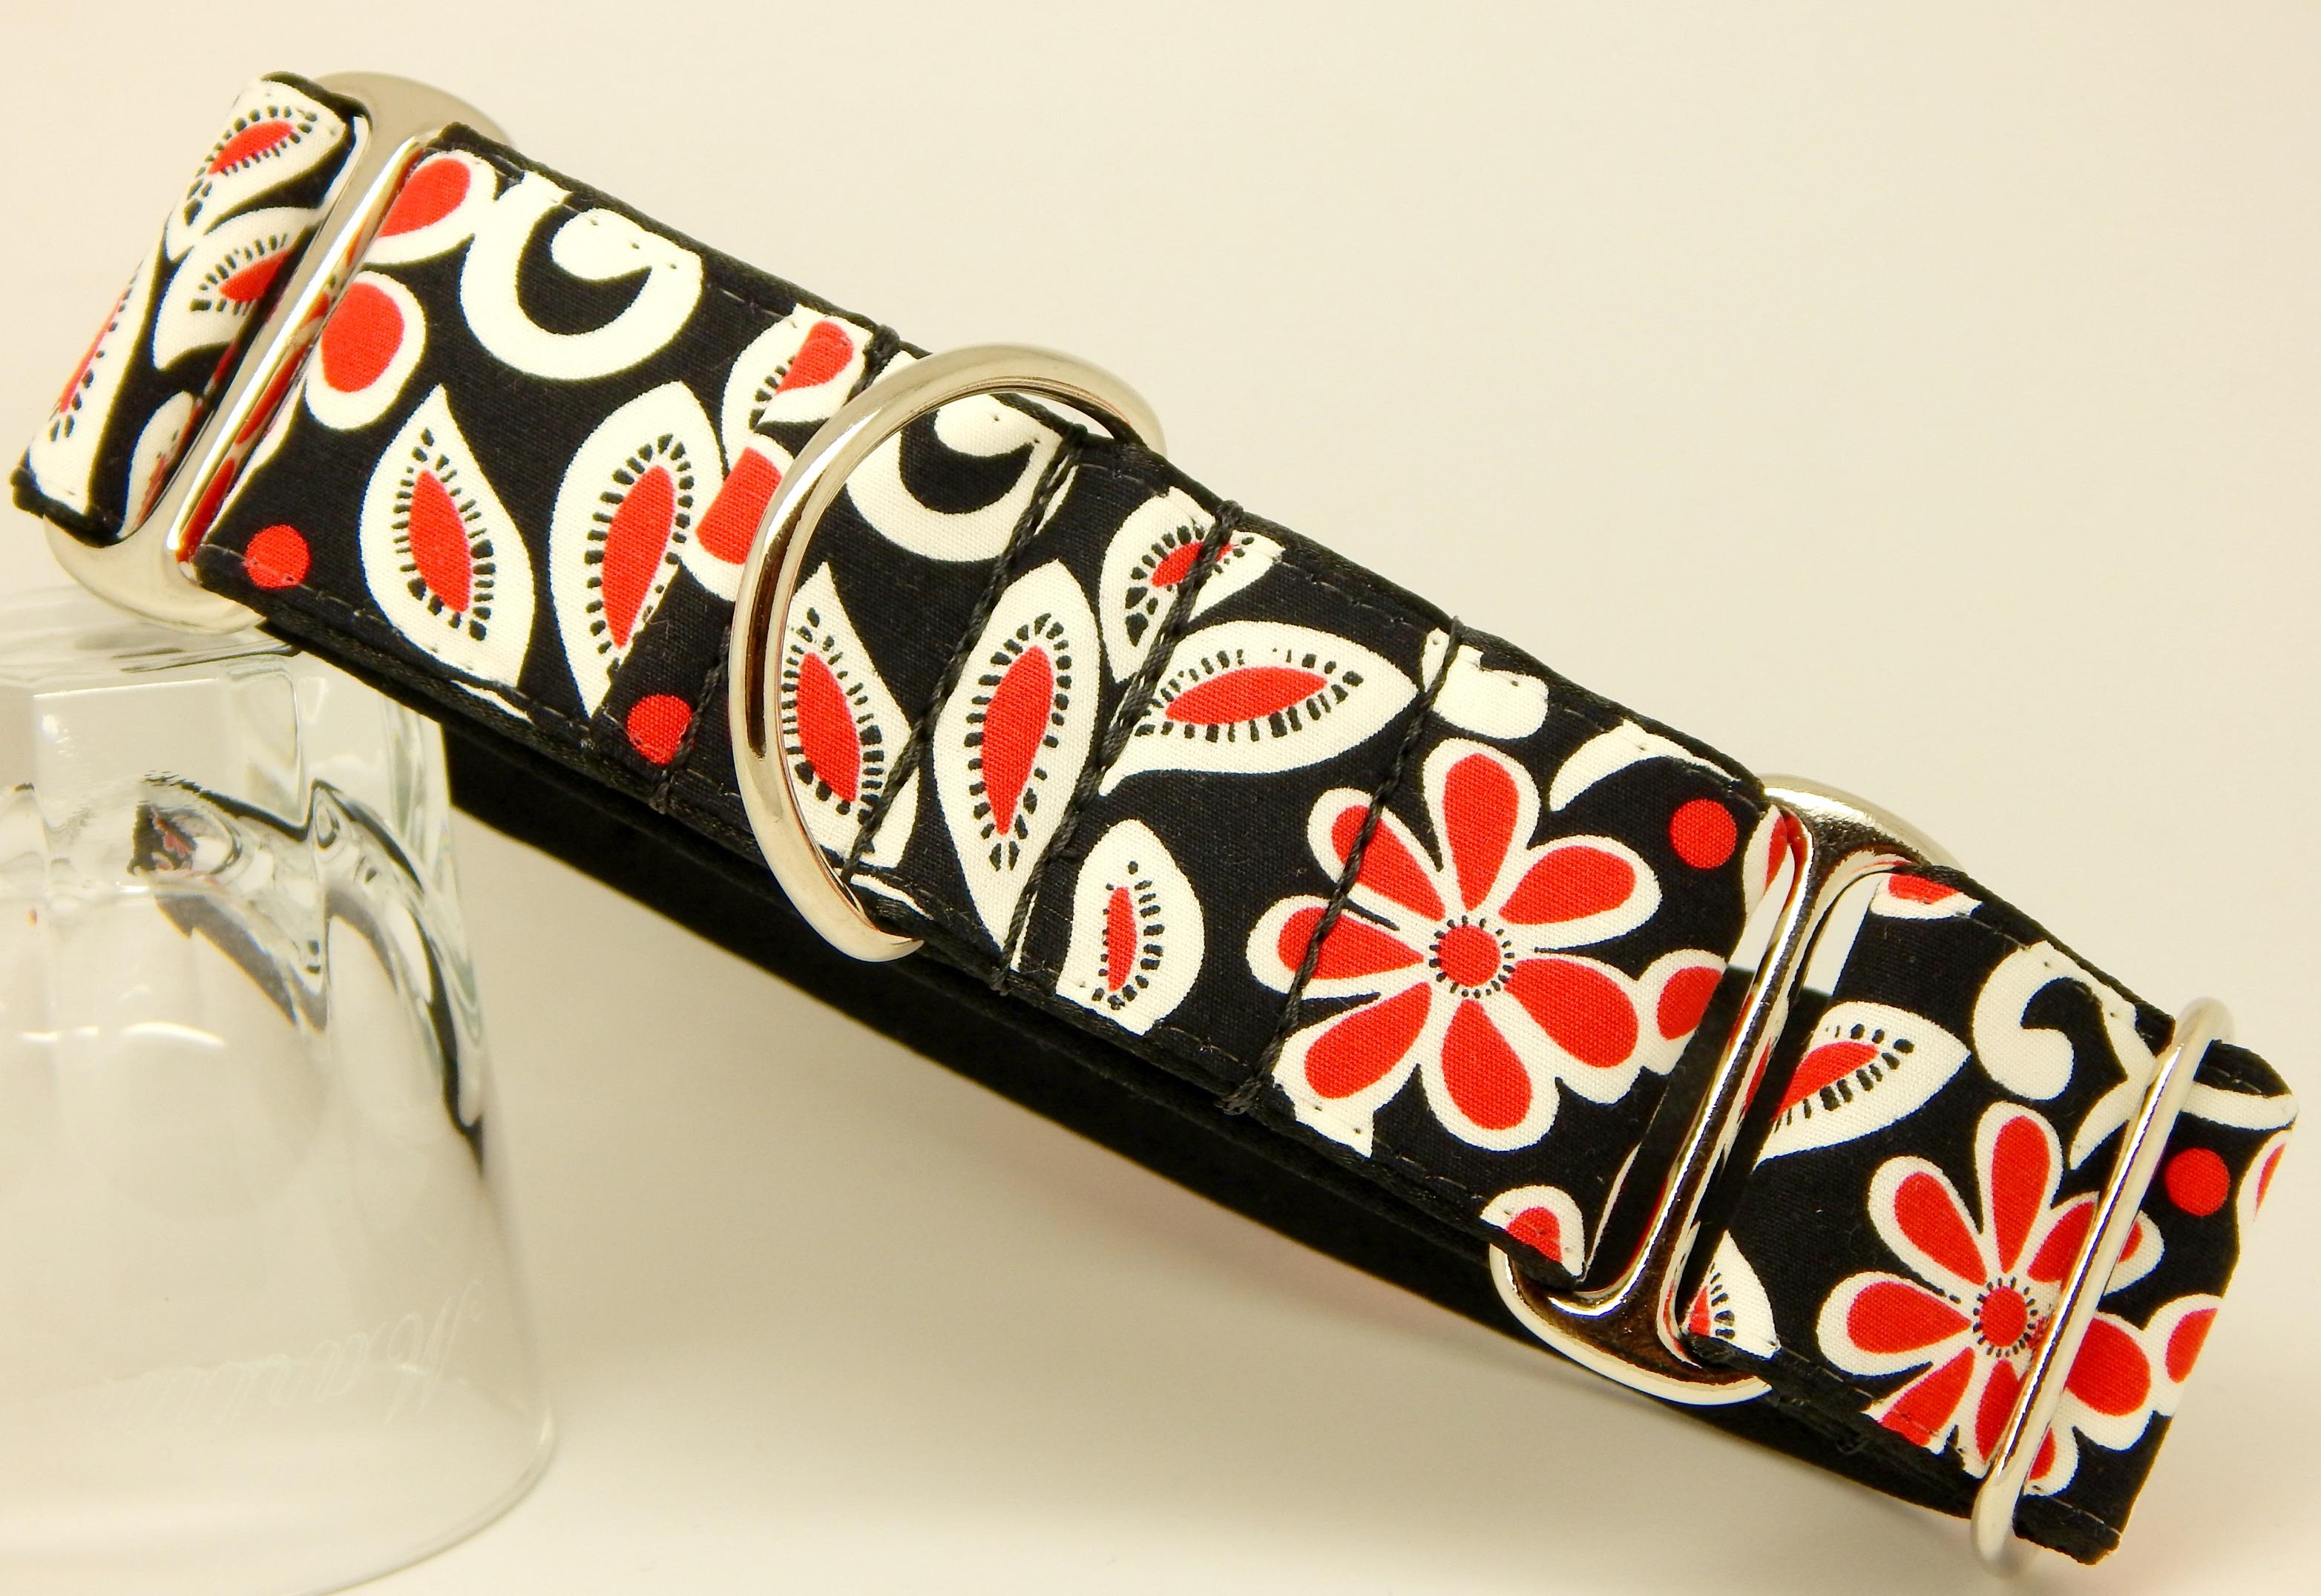 Red and black flower dog collar, available as house and walking collars